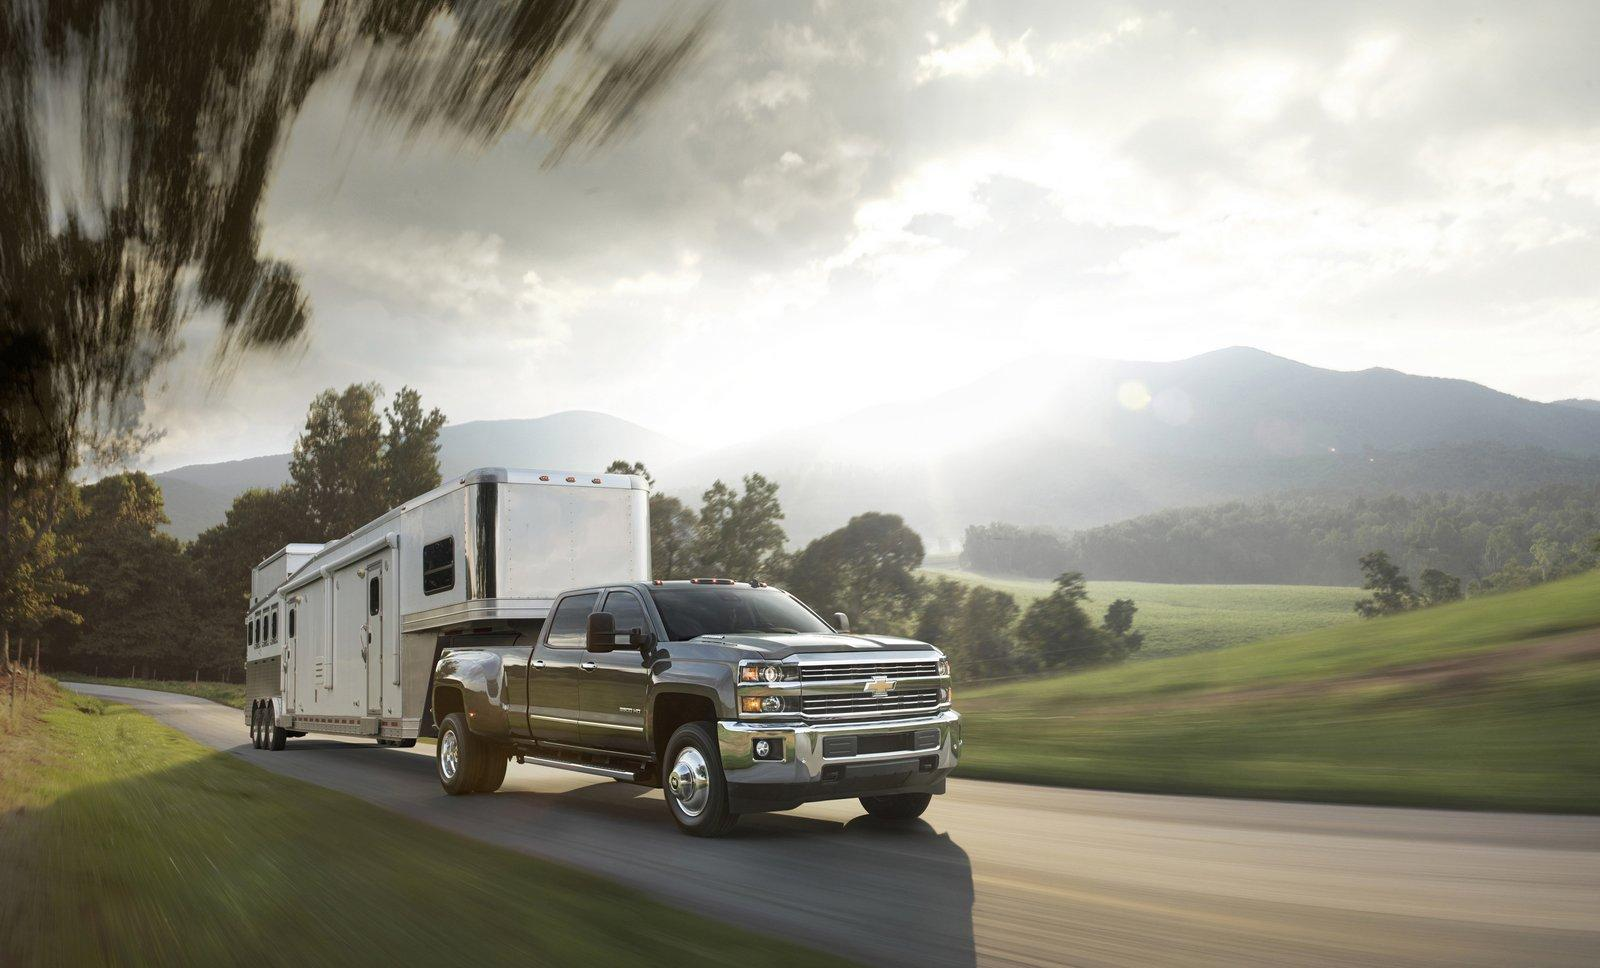 2016 Chevrolet Silverado HD High Res Wallpaper HD Car Wallpapers 1600x968